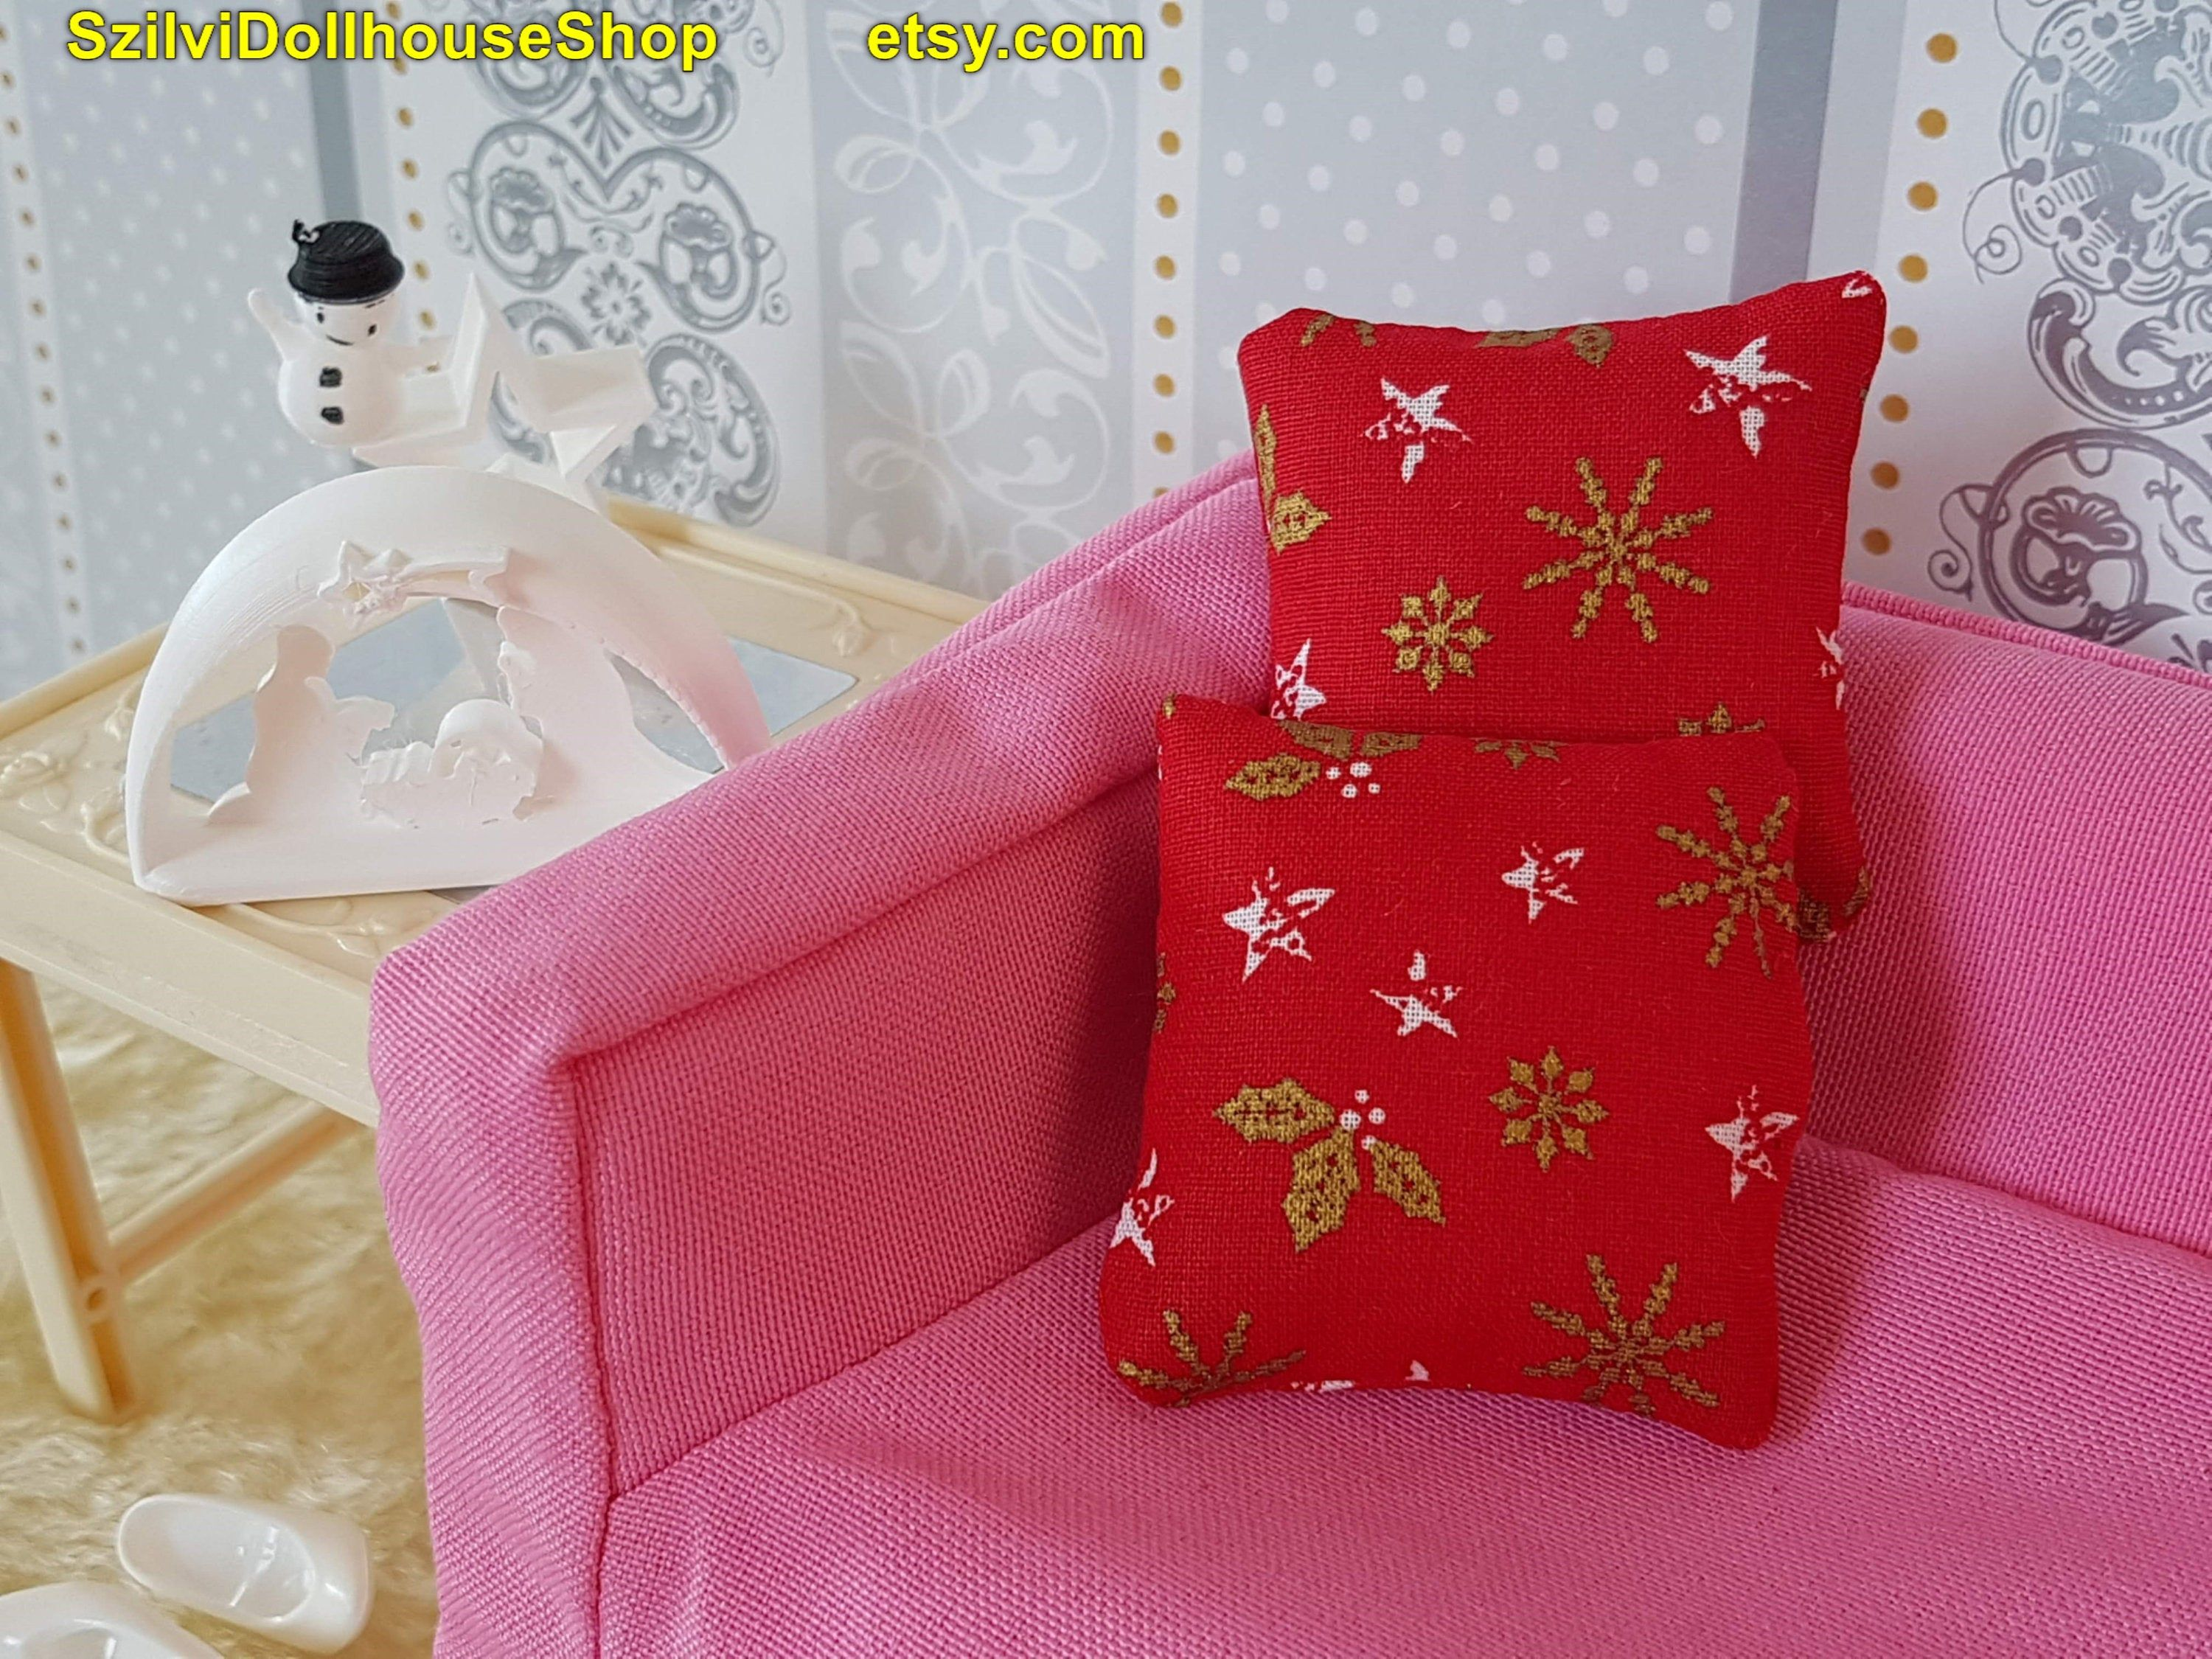 1pc Miniature Christmas pillow, cushion for doll like Barbie,Monster high,EAH, blythe, momoko, poppy parker. 1:12 scale dollhouse accessory. #dollhouseaccessories